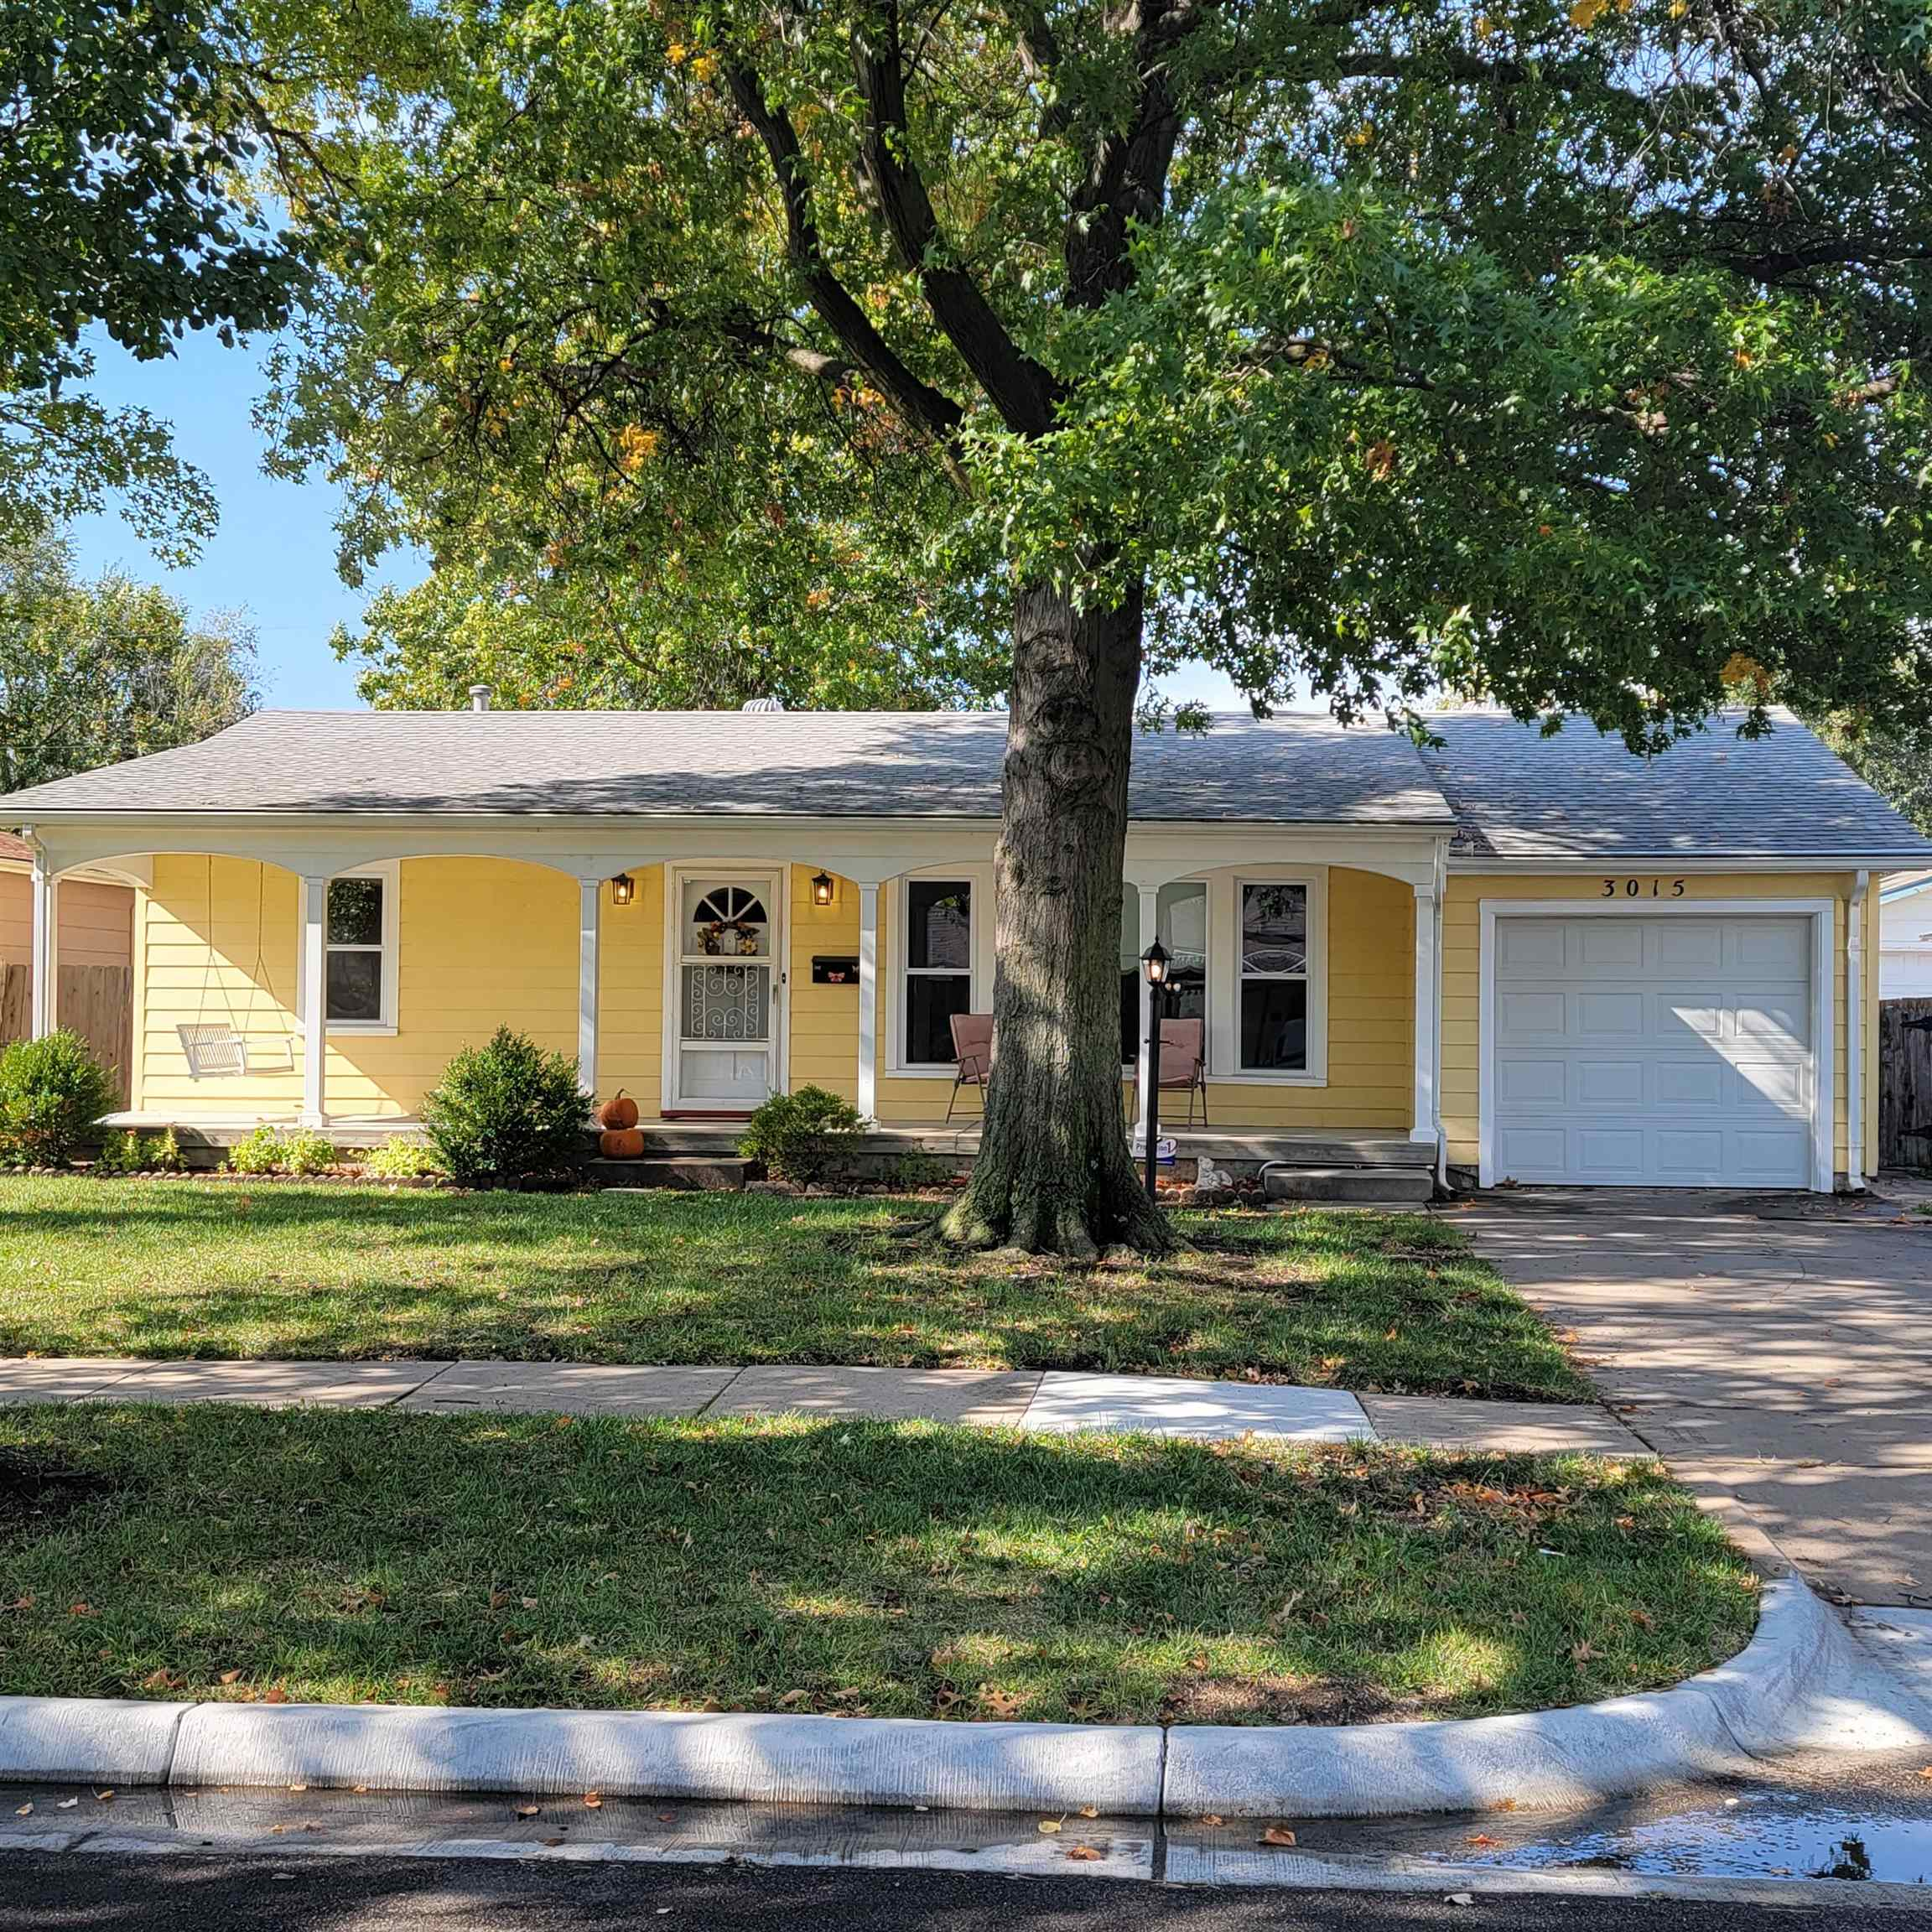 3 bedroom large ranch style home with a large covered porches front and back. The Livingroom and Fam